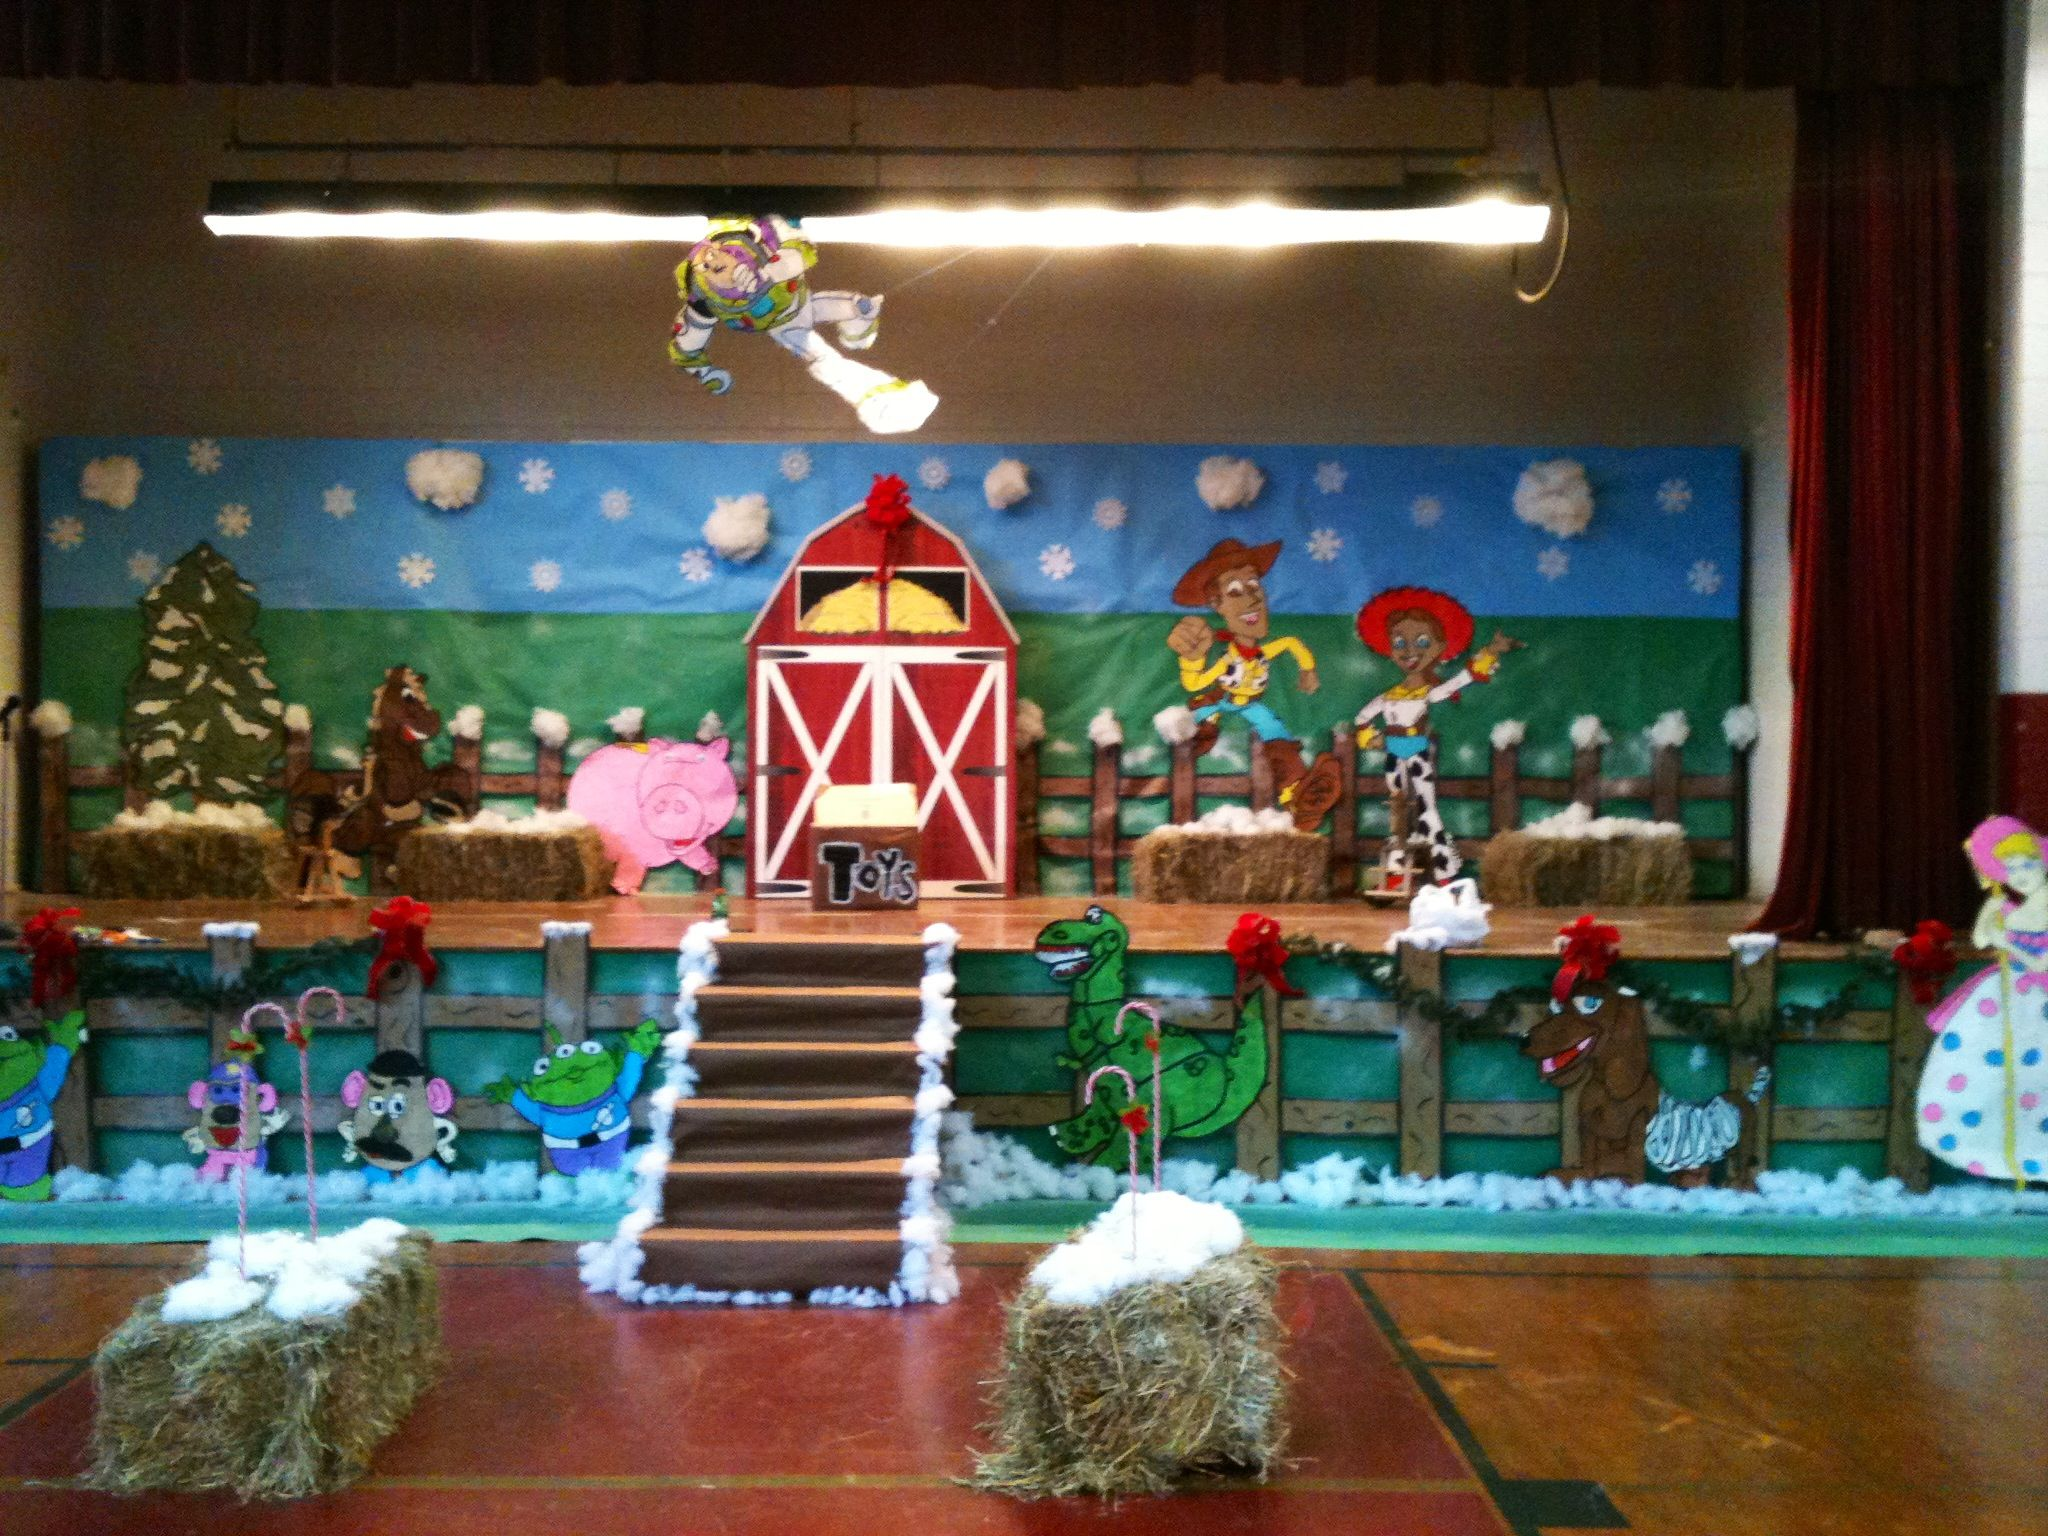 A Toy Story Christmas Play School Decorations Christmas